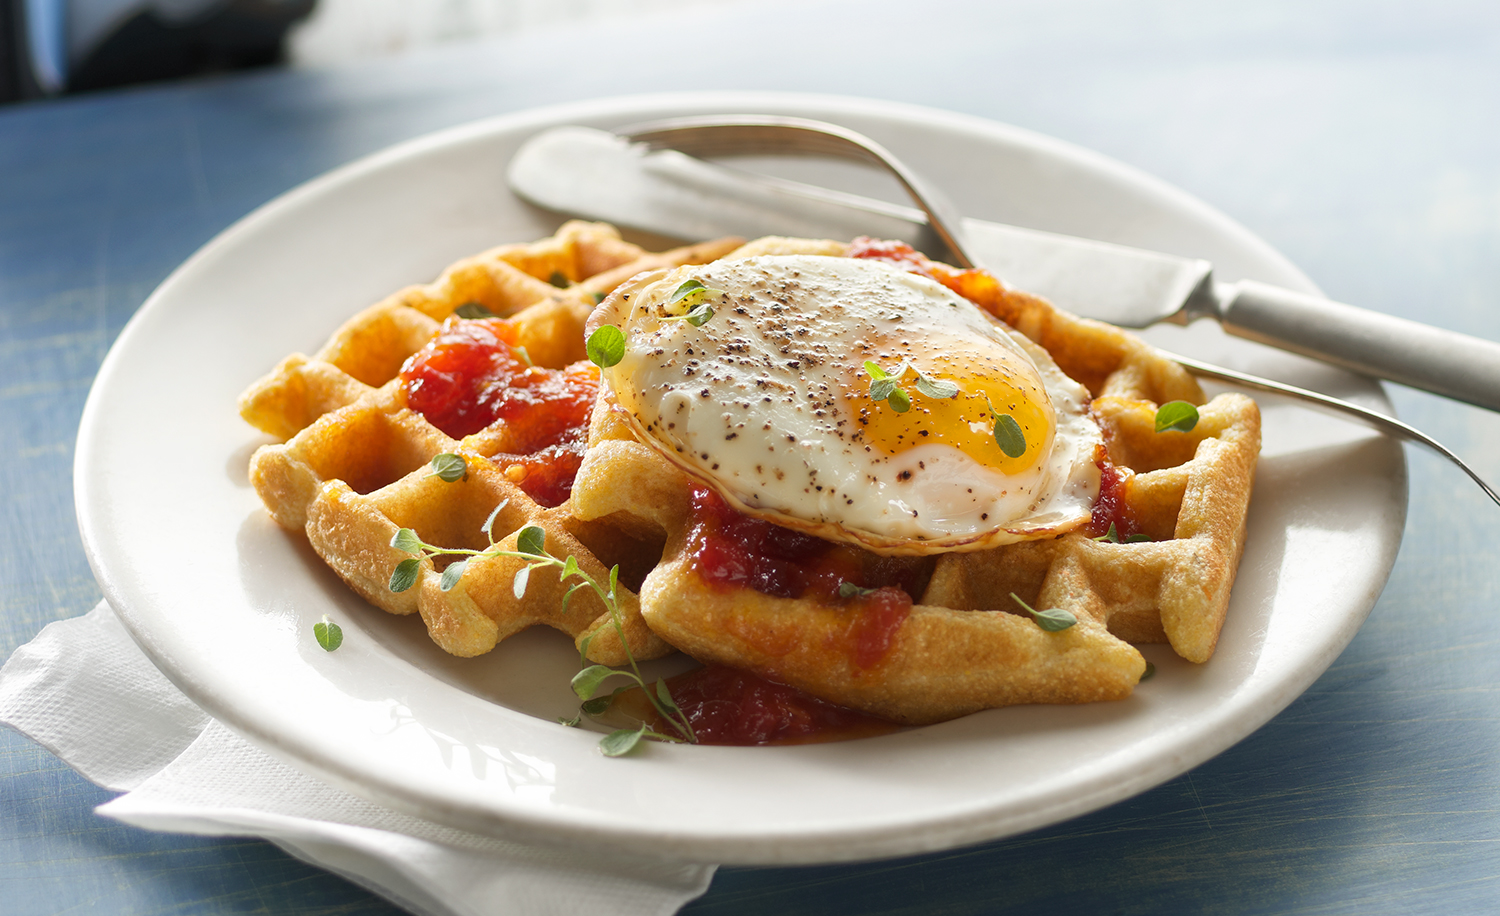 Savory Cornmeal Waffles with Tomato Jam and a Fried Egg | Tony K